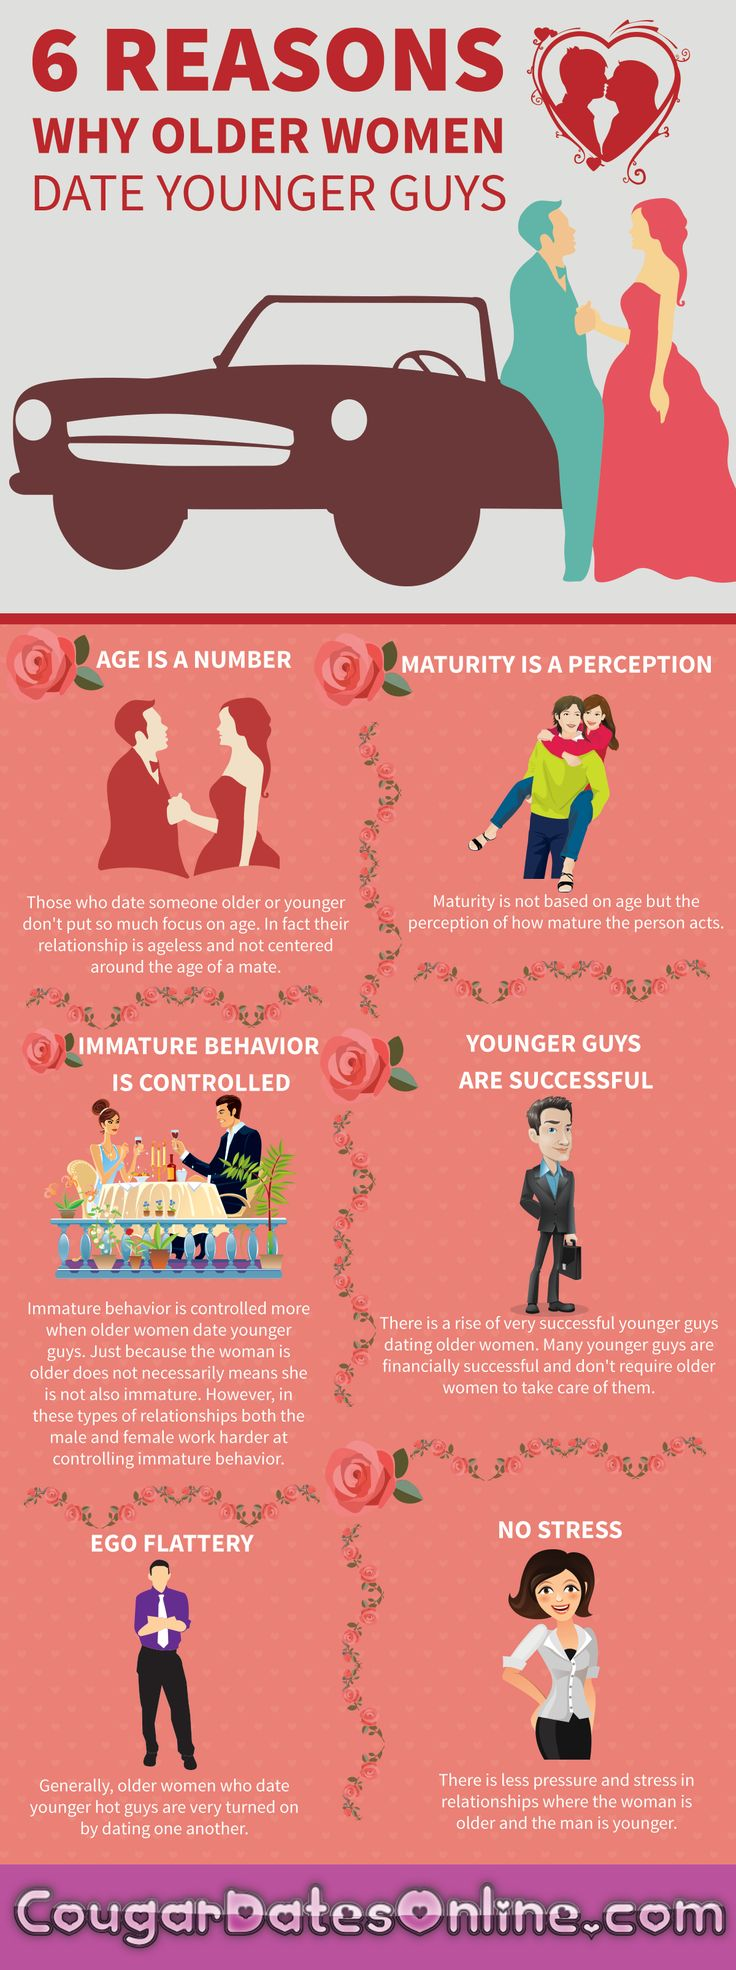 Top 6 reasons why older women date younger men